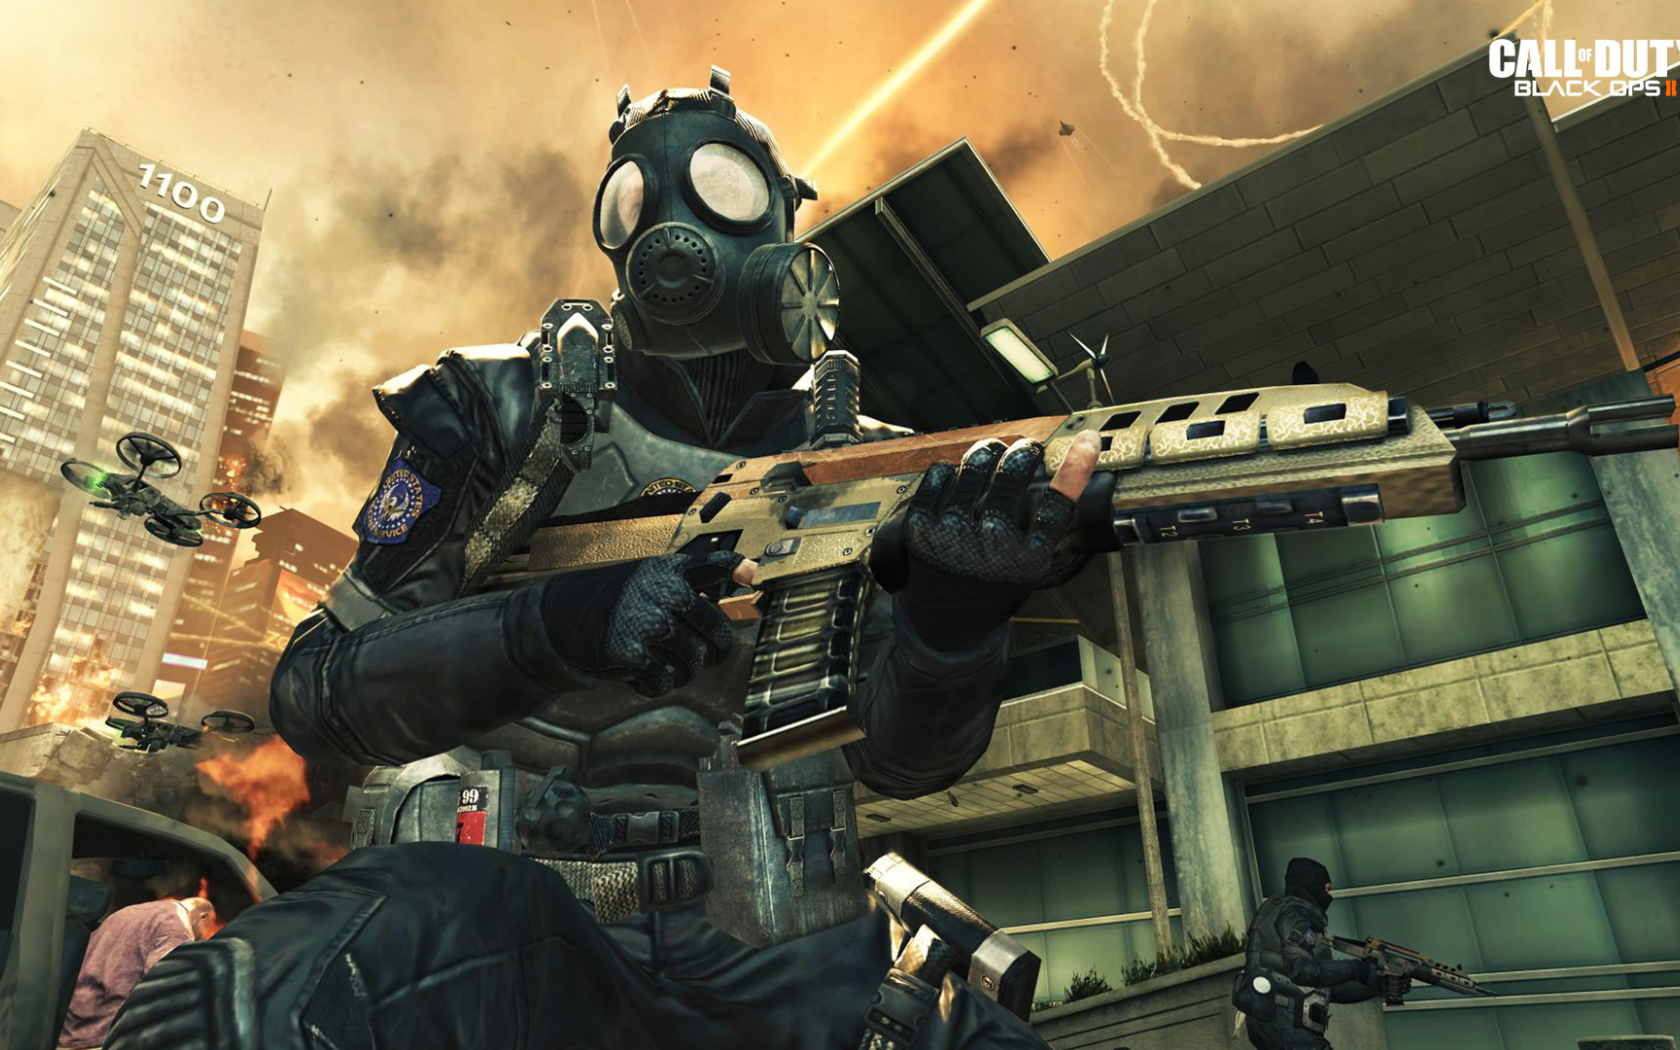 Free Download Desktop Wallpaper Hd 1080pcall Of Duty Black Ops 2